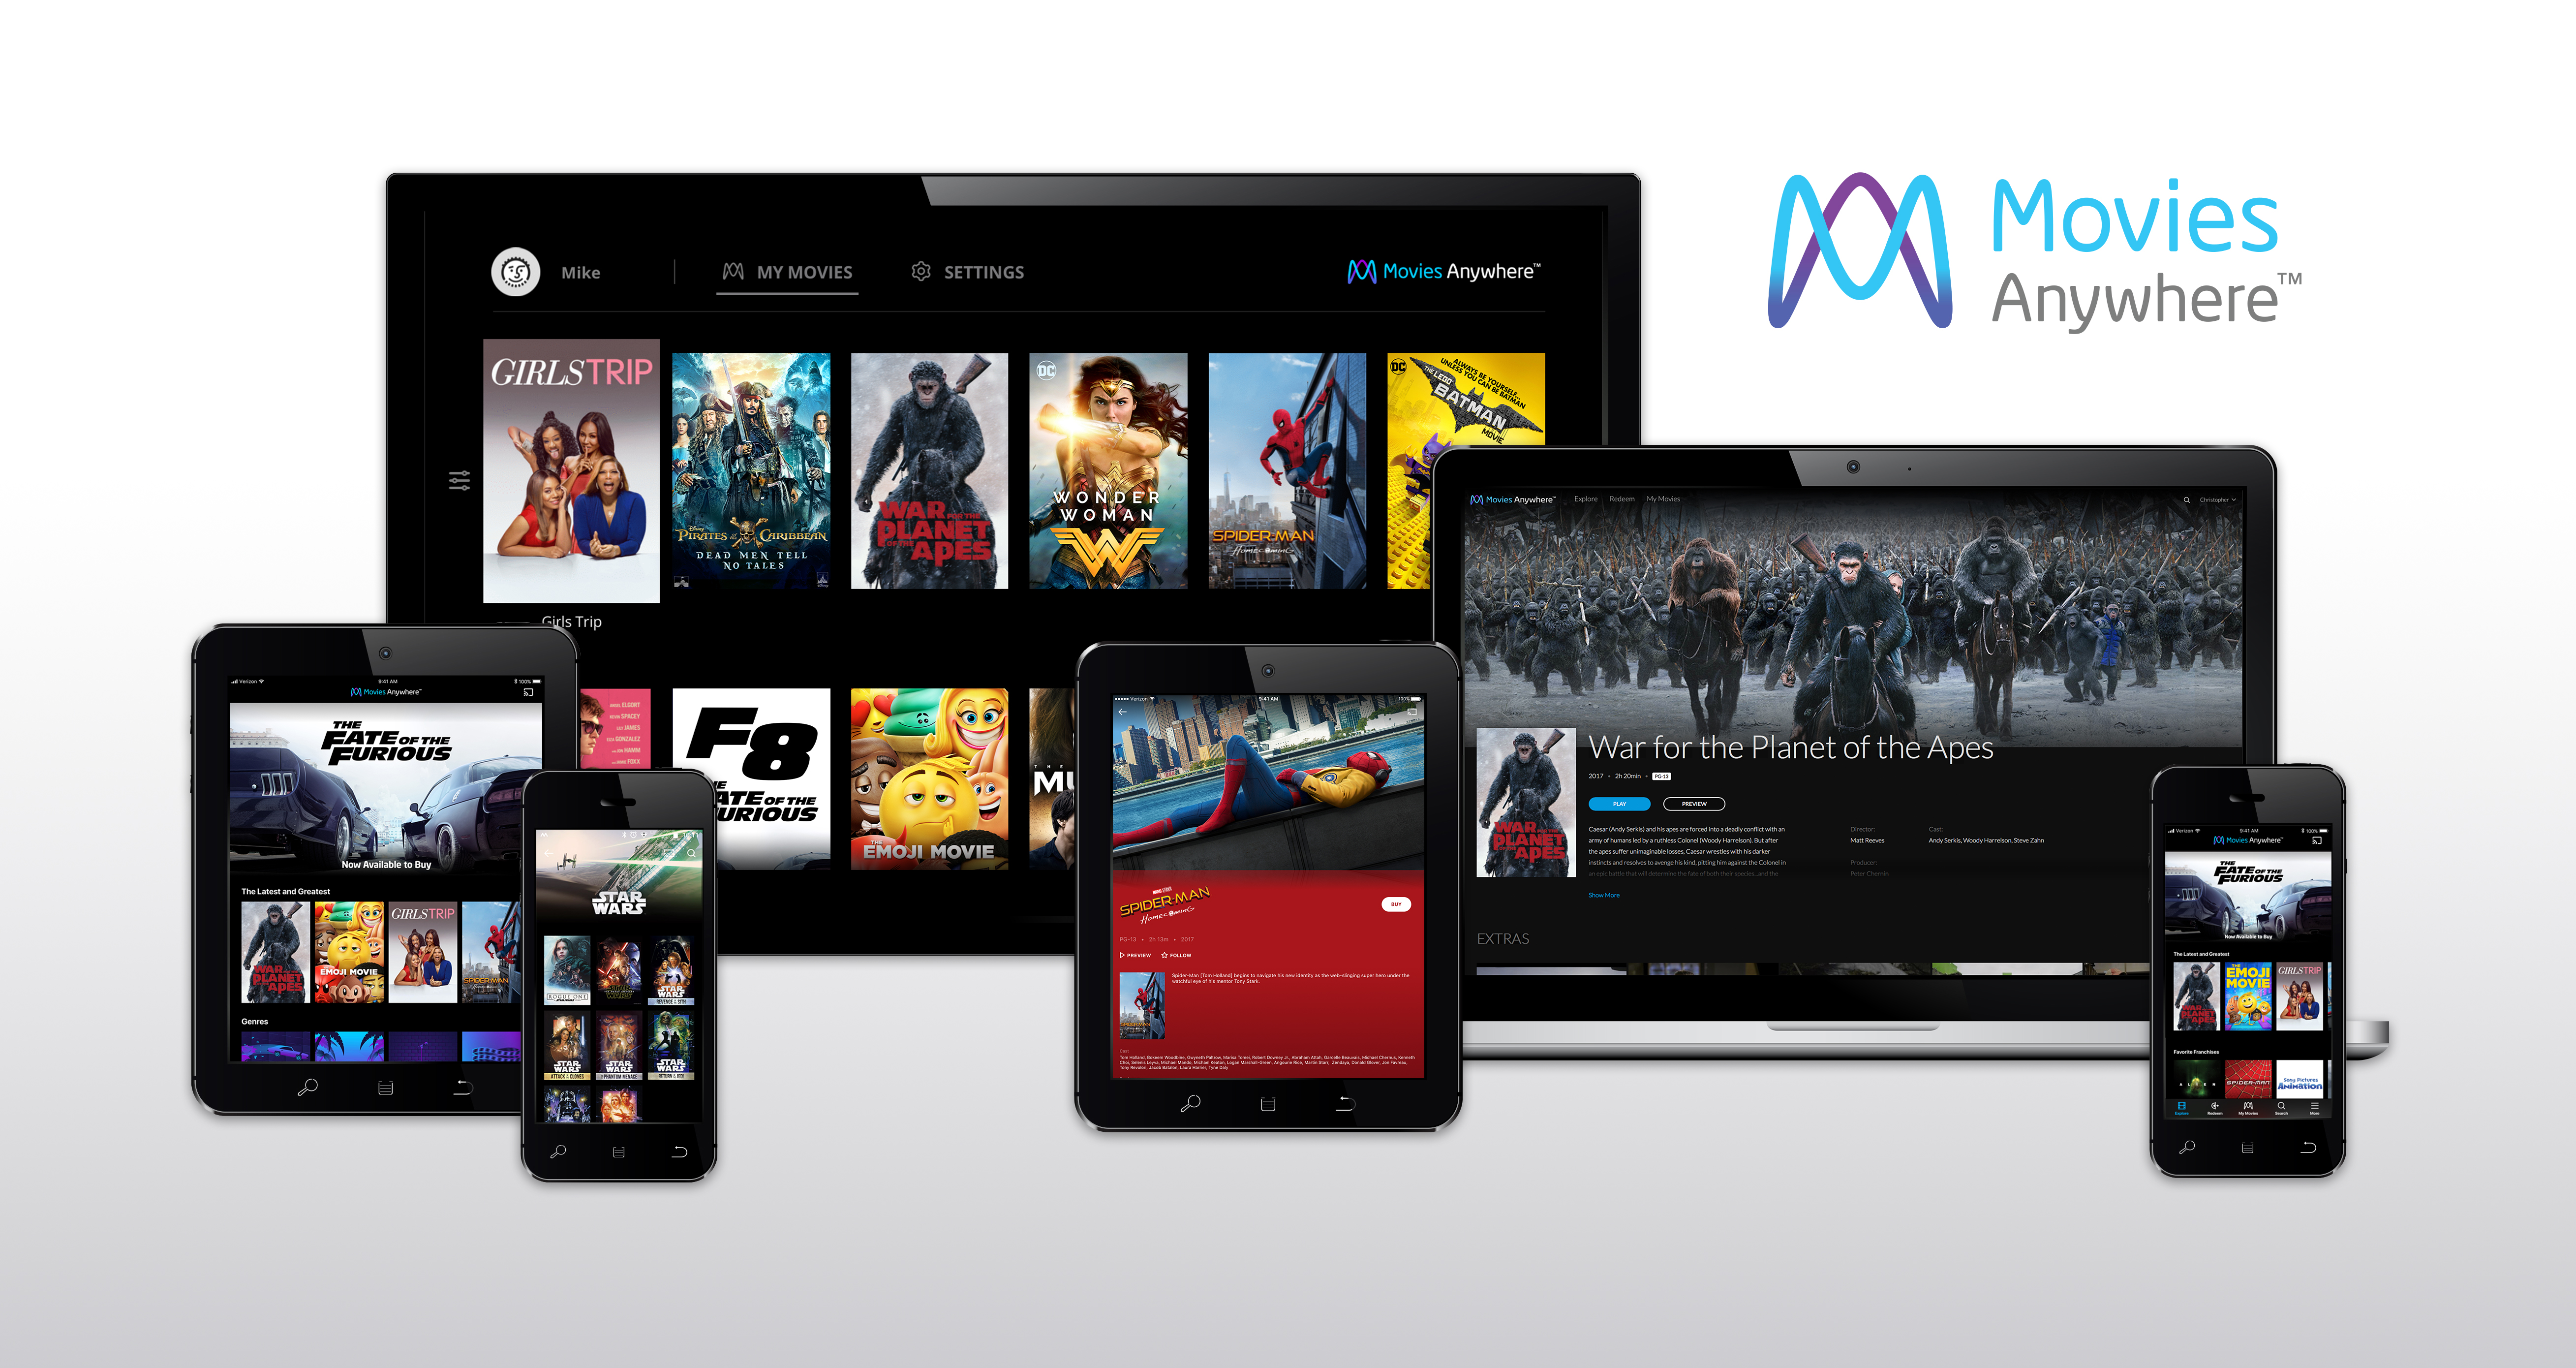 Movies Anywhere: Inside the App Bringing 5 Studios Together